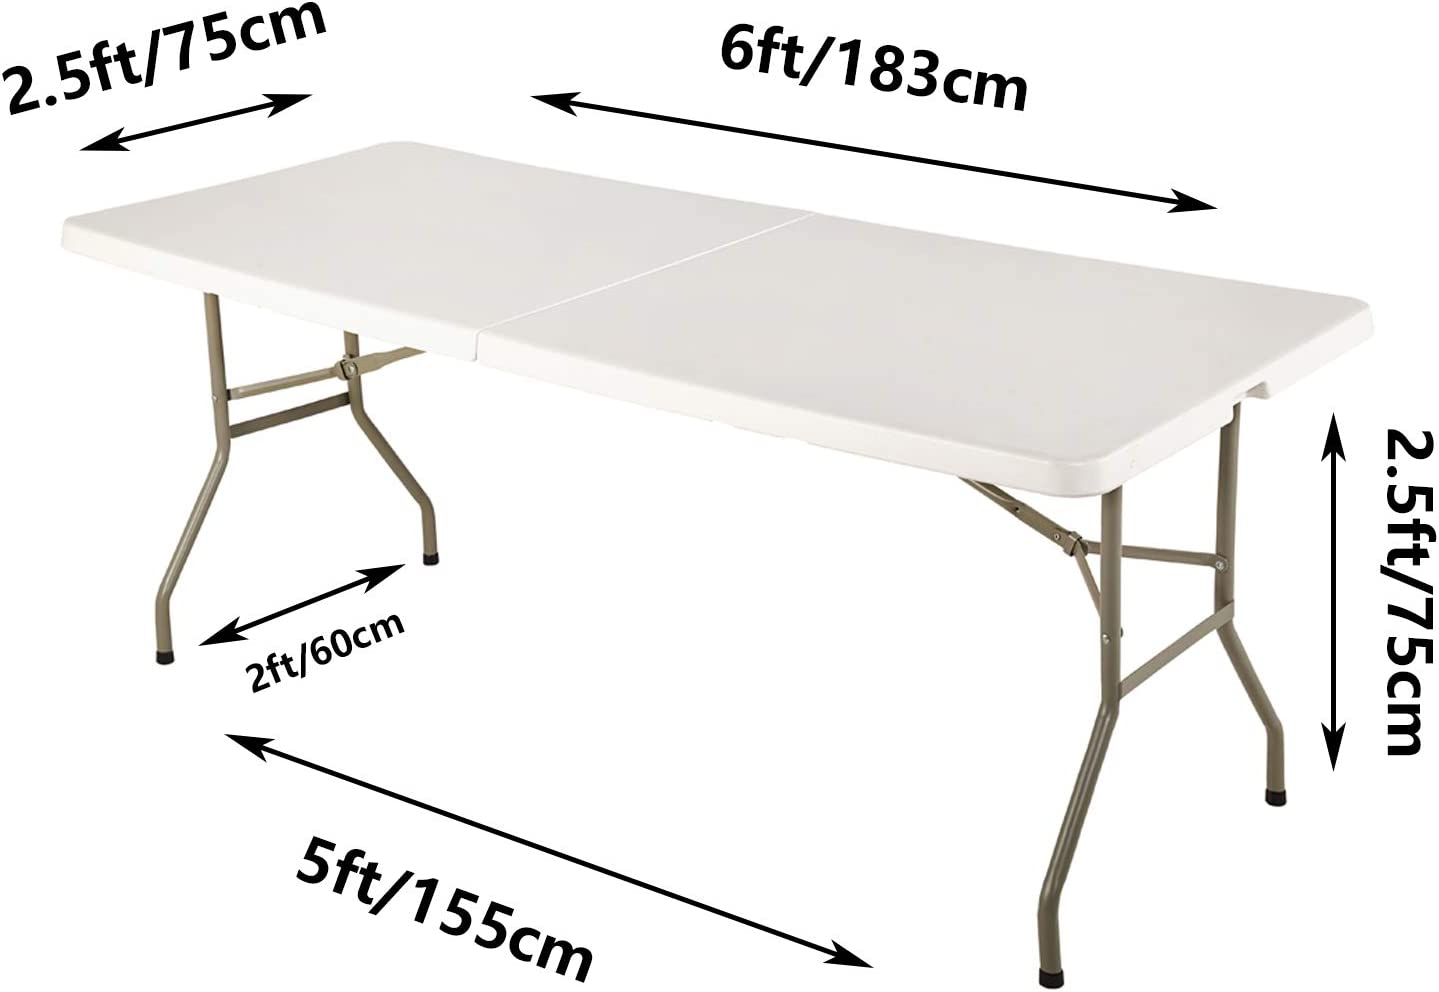 10 Pack Spandex Table Covers 6 Feet, Stretch/Fitted Table Covers for 6 Feet Folding Table, Rectangular Spandex Table Cloths for Wedding Party or Event by FELIZEST 6pack-black